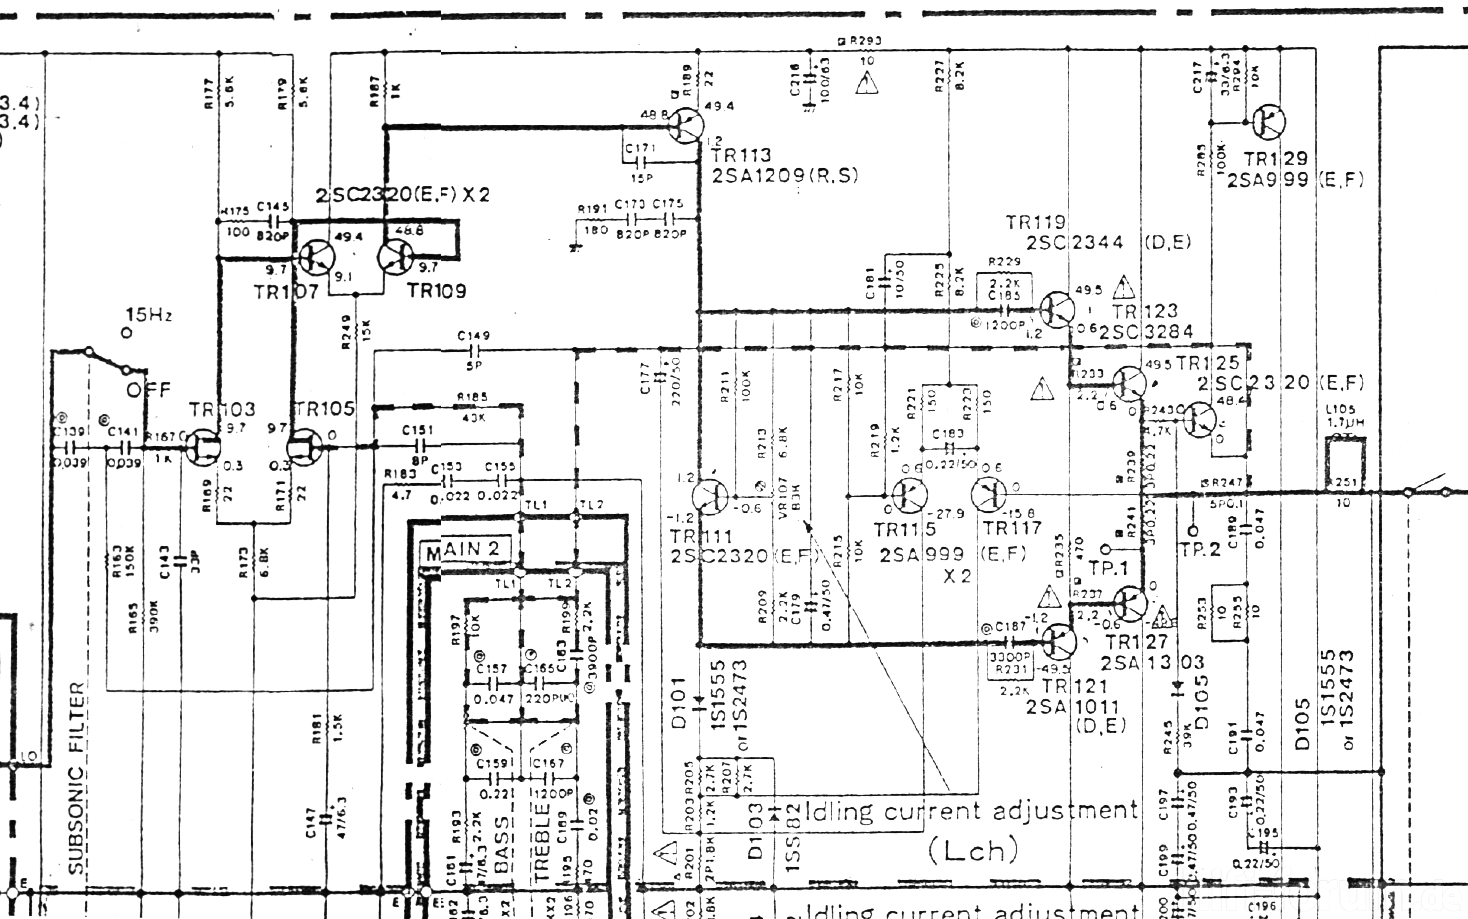 yamaha a 500 schematic detail power amplifier stage left channel_198474 2007 ford five hundred car stereo wiring diagram radiobuzz48 2007 ford focus stereo wiring diagram at et-consult.org